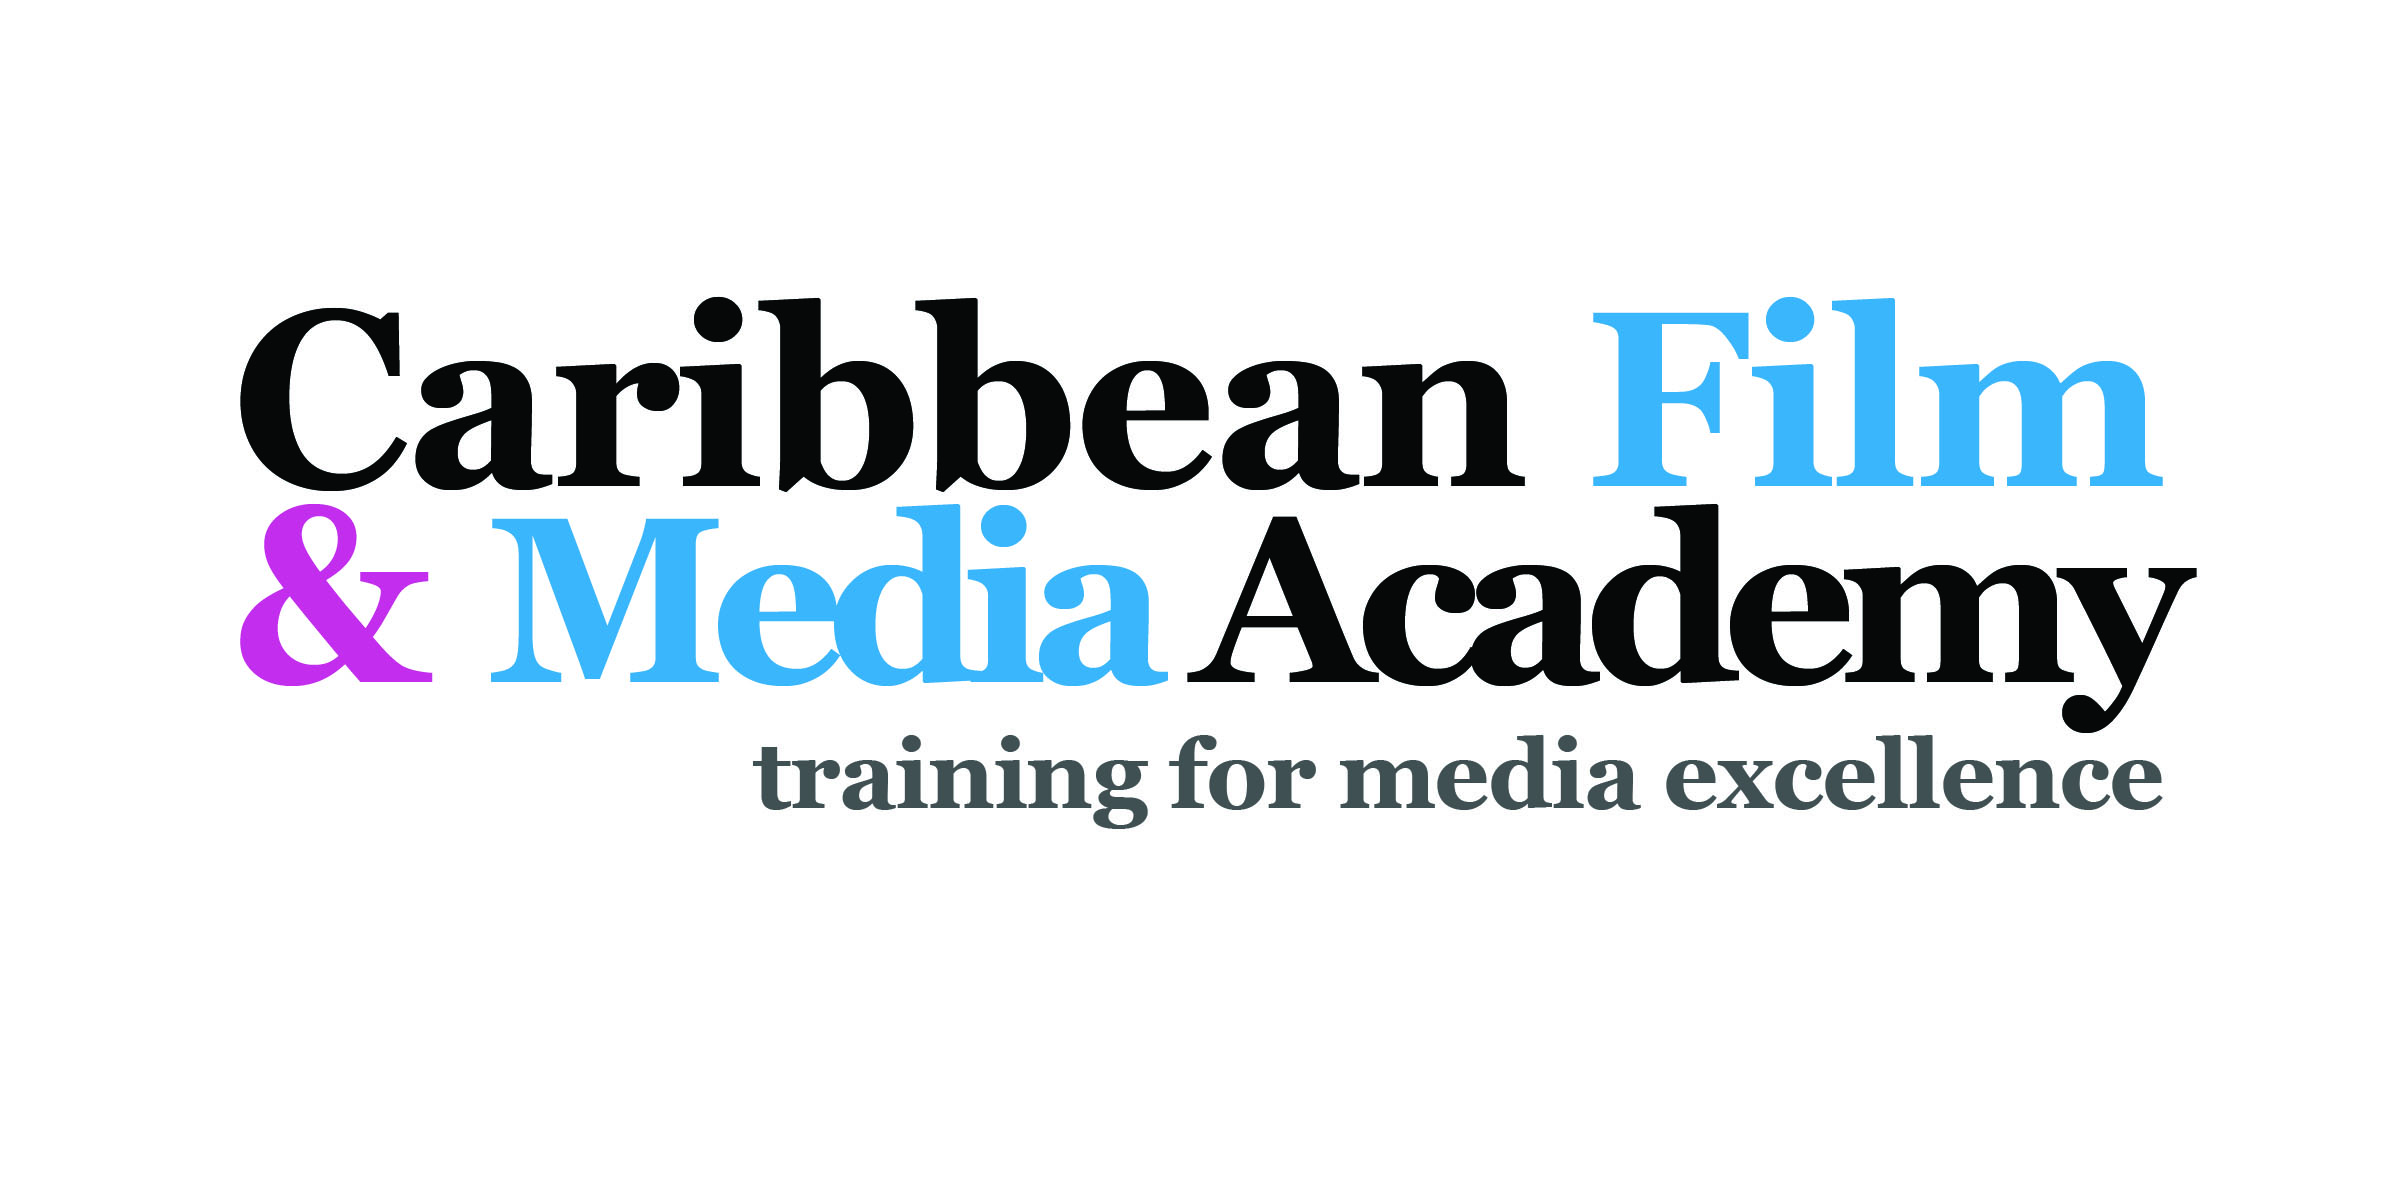 https://bestofcaribbeantales.files.wordpress.com/2009/12/cfma-logo2.jpg